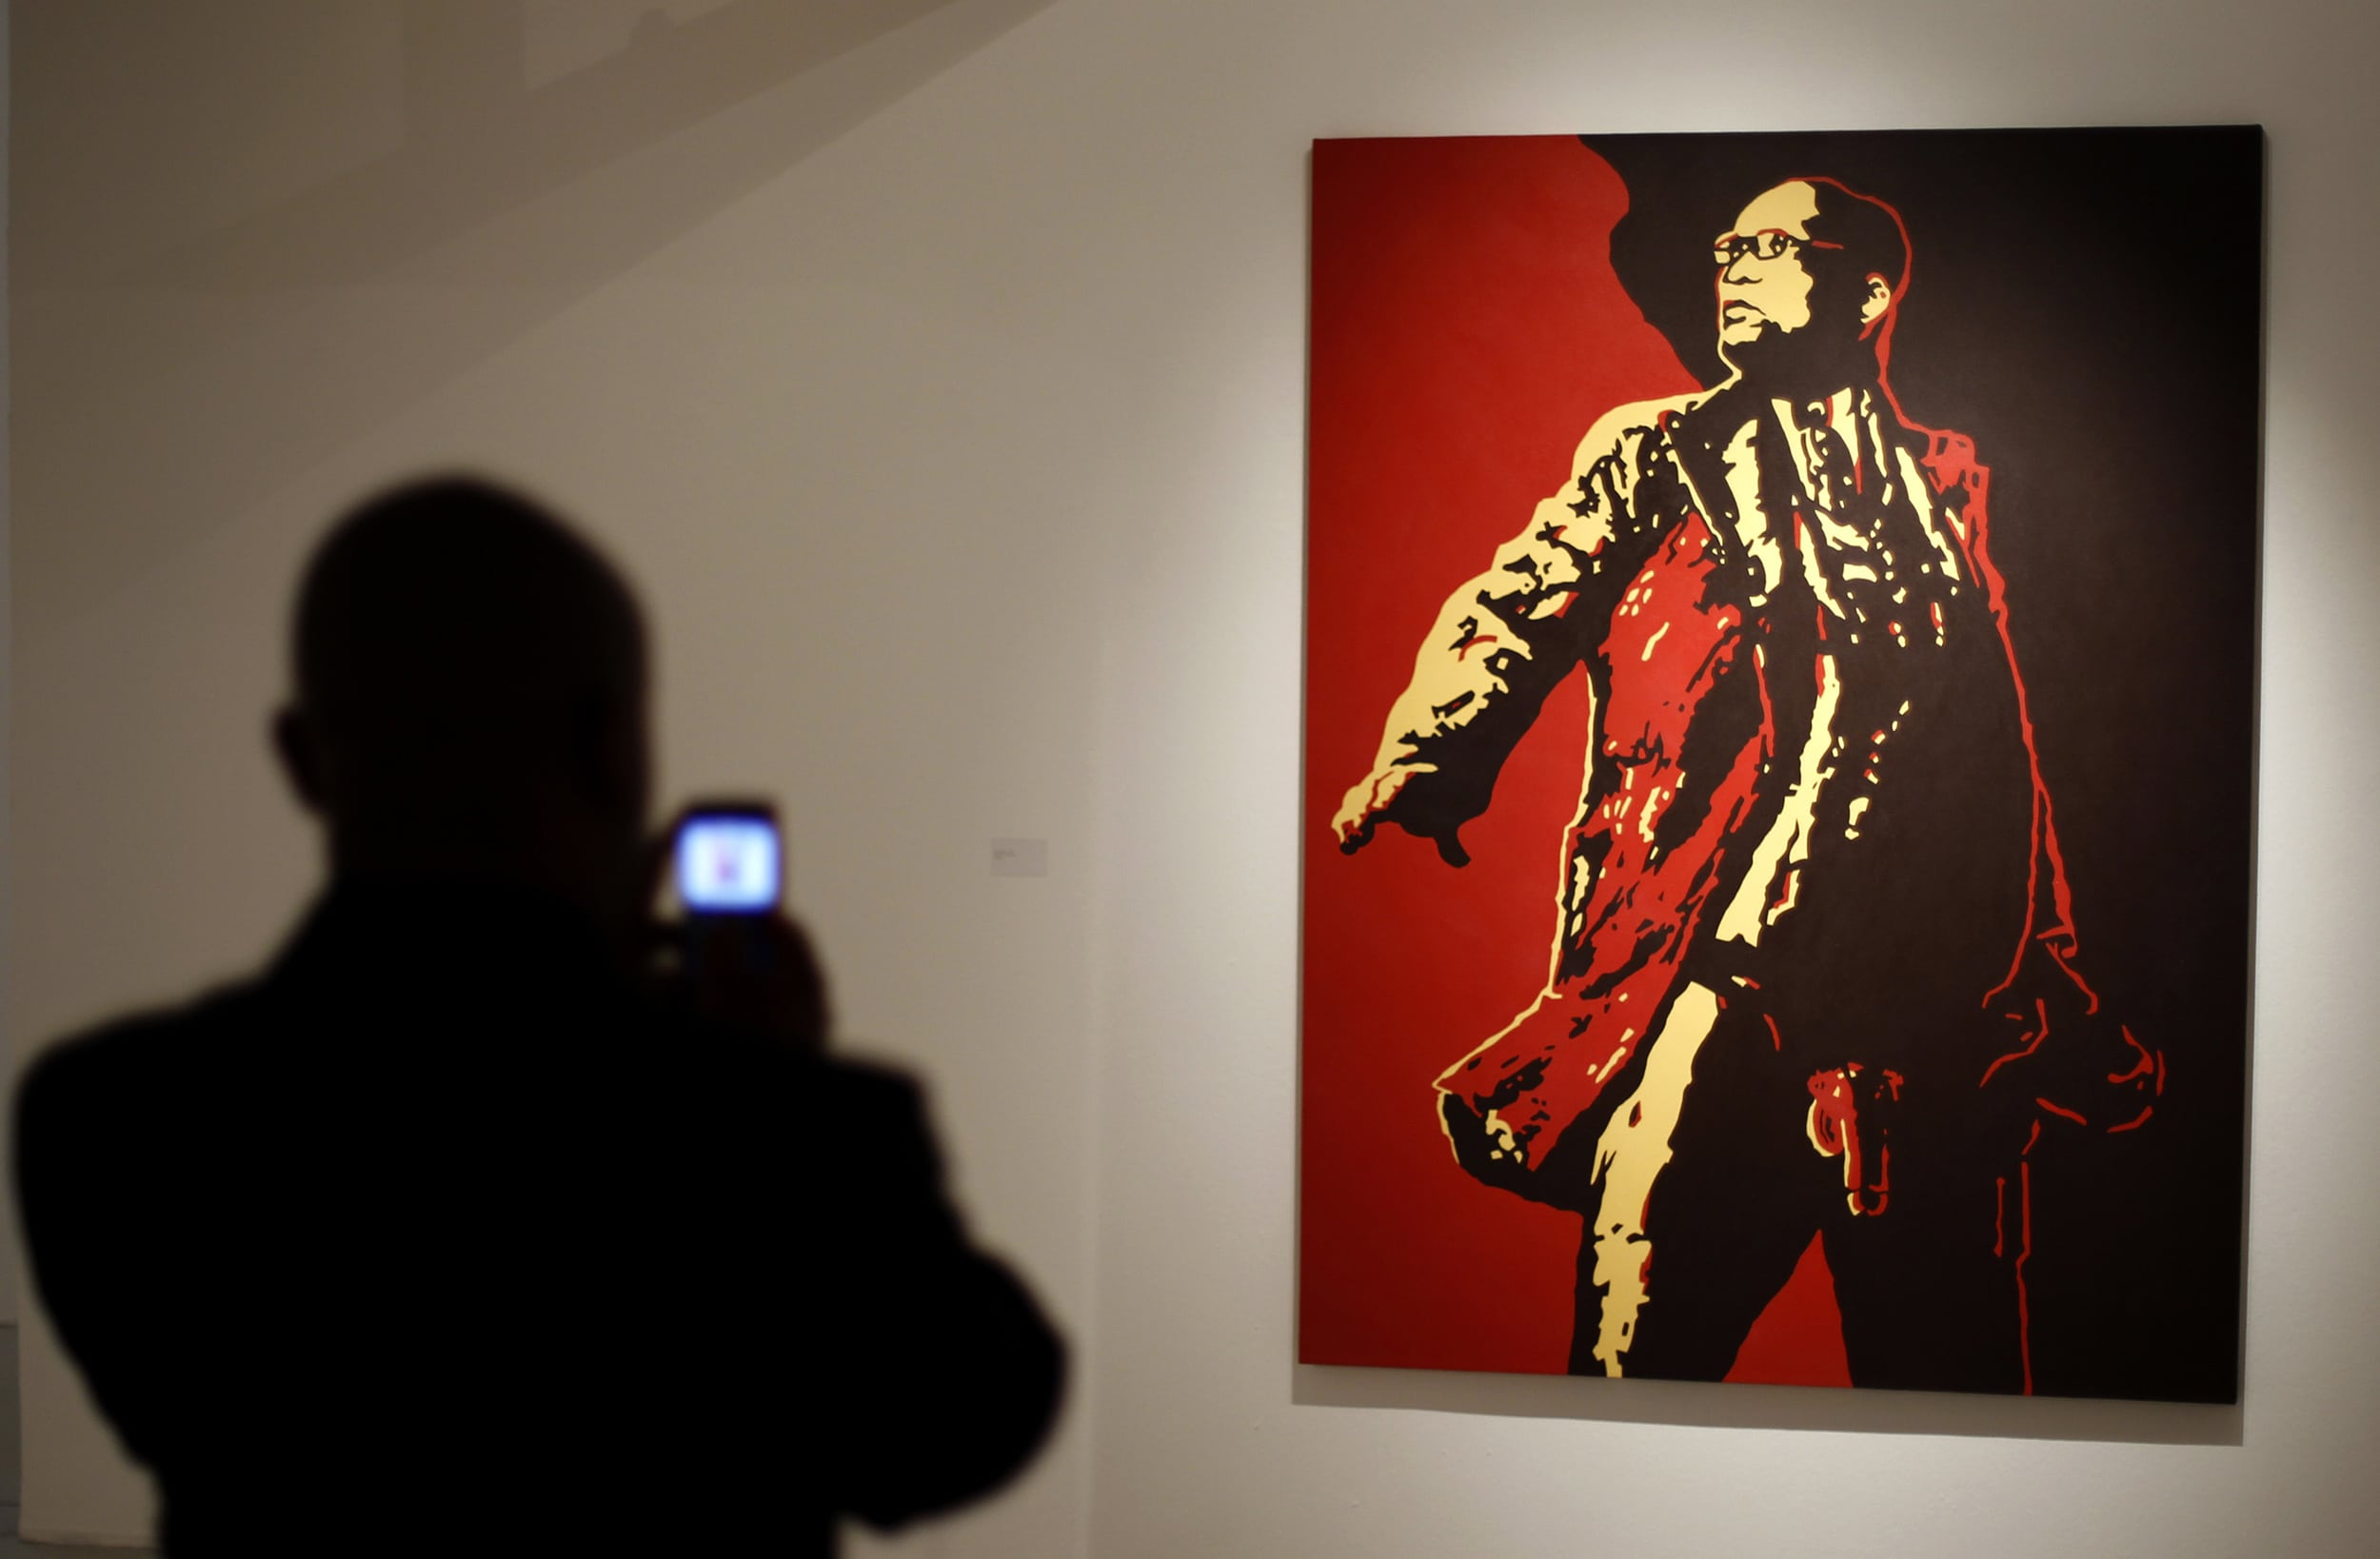 South Africa's ruling ANC threatened to take legal action against a Johannesburg gallery for displaying this painting of President Jacob Zuma because it violates his right to dignity and makes a mockery of his office, Siphiwe Sibeko/REUTERS